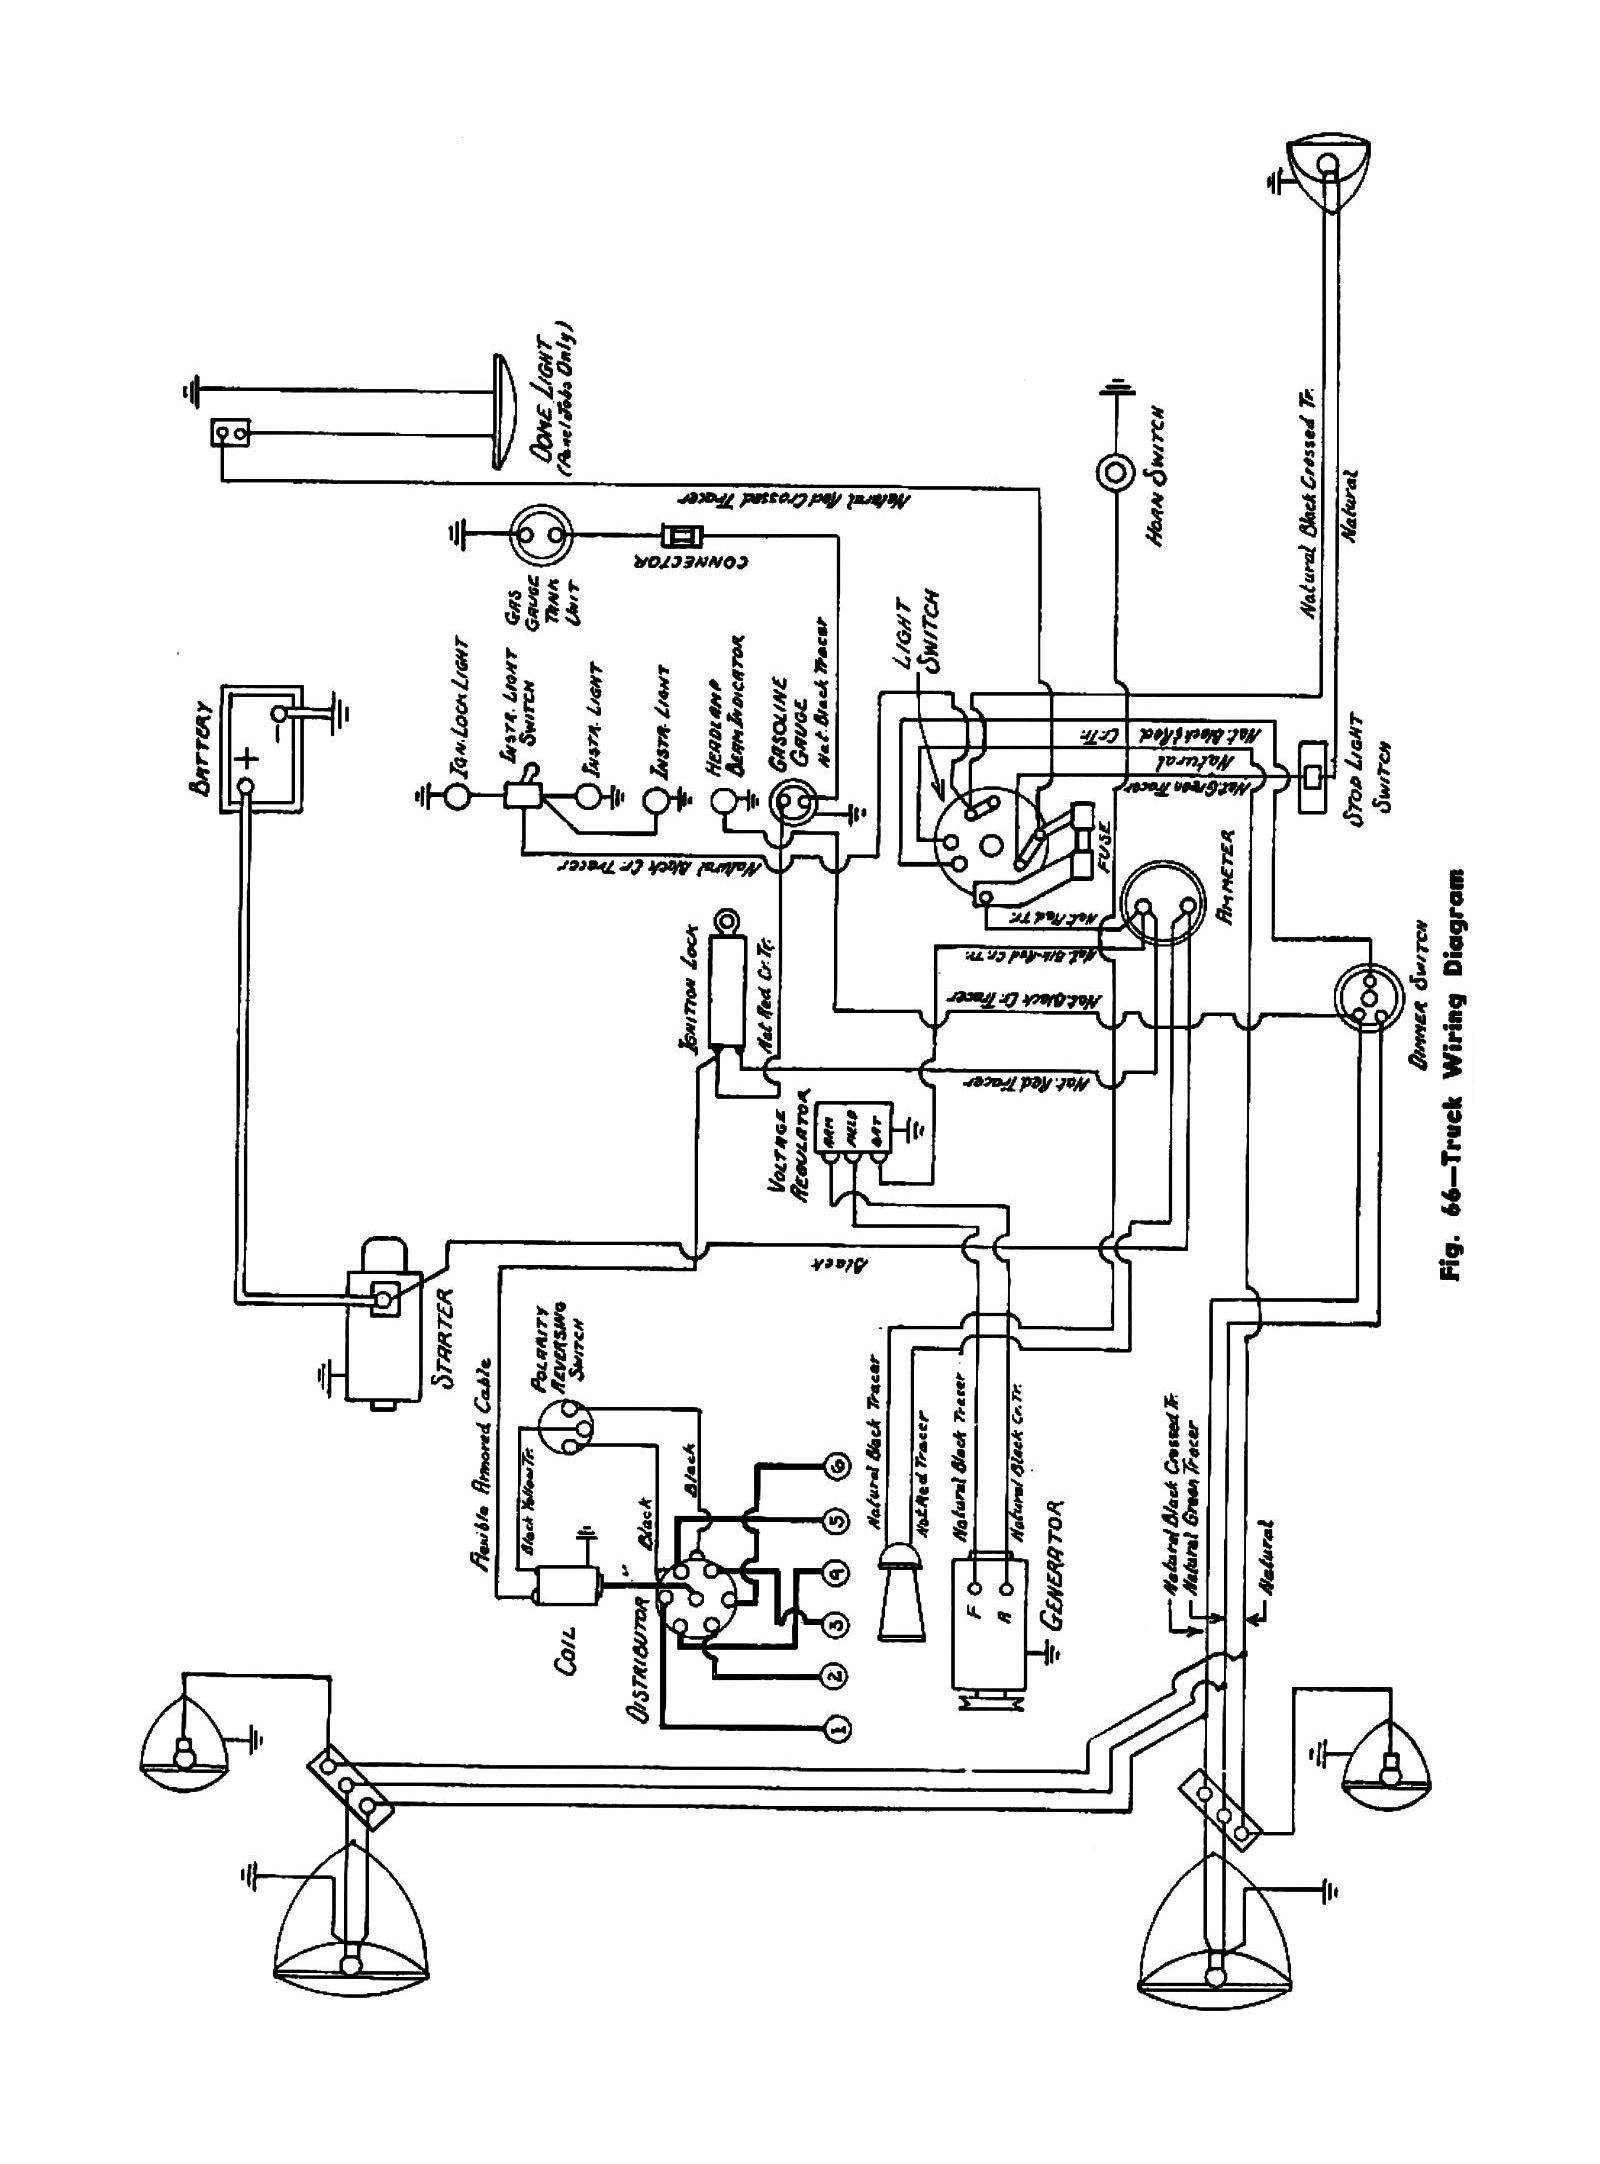 45truck ihc truck wiring diagrams mazda truck wiring diagrams \u2022 free  at crackthecode.co